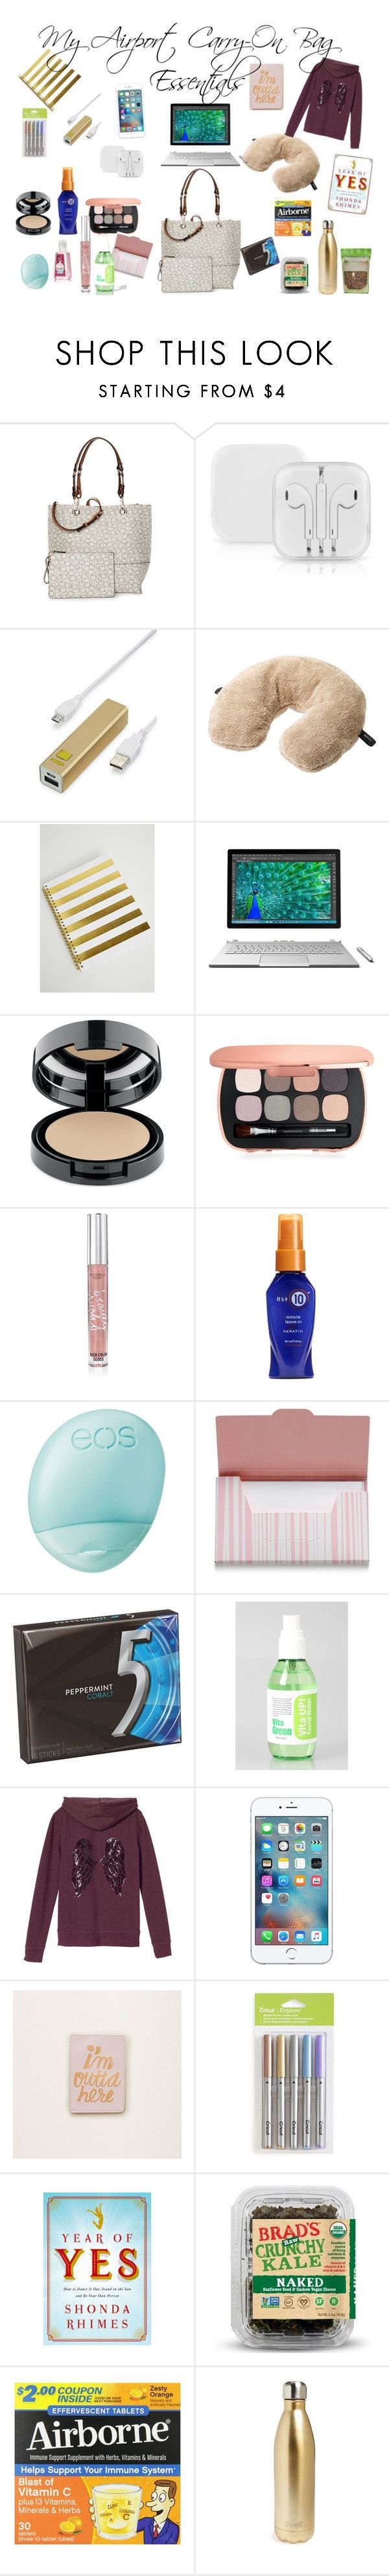 """My Airport Carry-On Bag Essentials"" by marahenry on Polyvore featuring Calvin Klein, LMNT, Go Travel, Forever 21, Microsoft, Bare Escentuals, Victoria's Secret, Eos, Shiseido and Holika Holika"